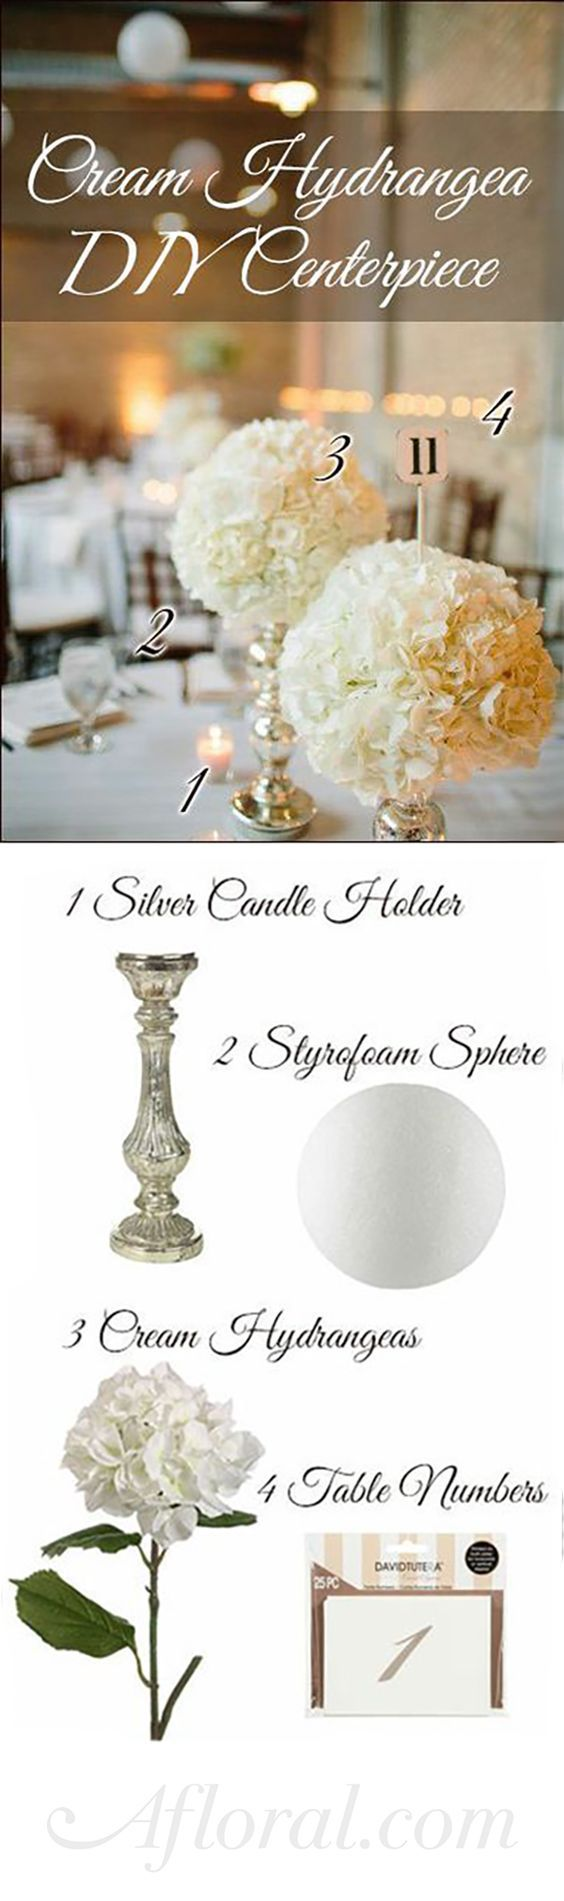 DIY hydrangea centerpiece ideas for your wedding reception.